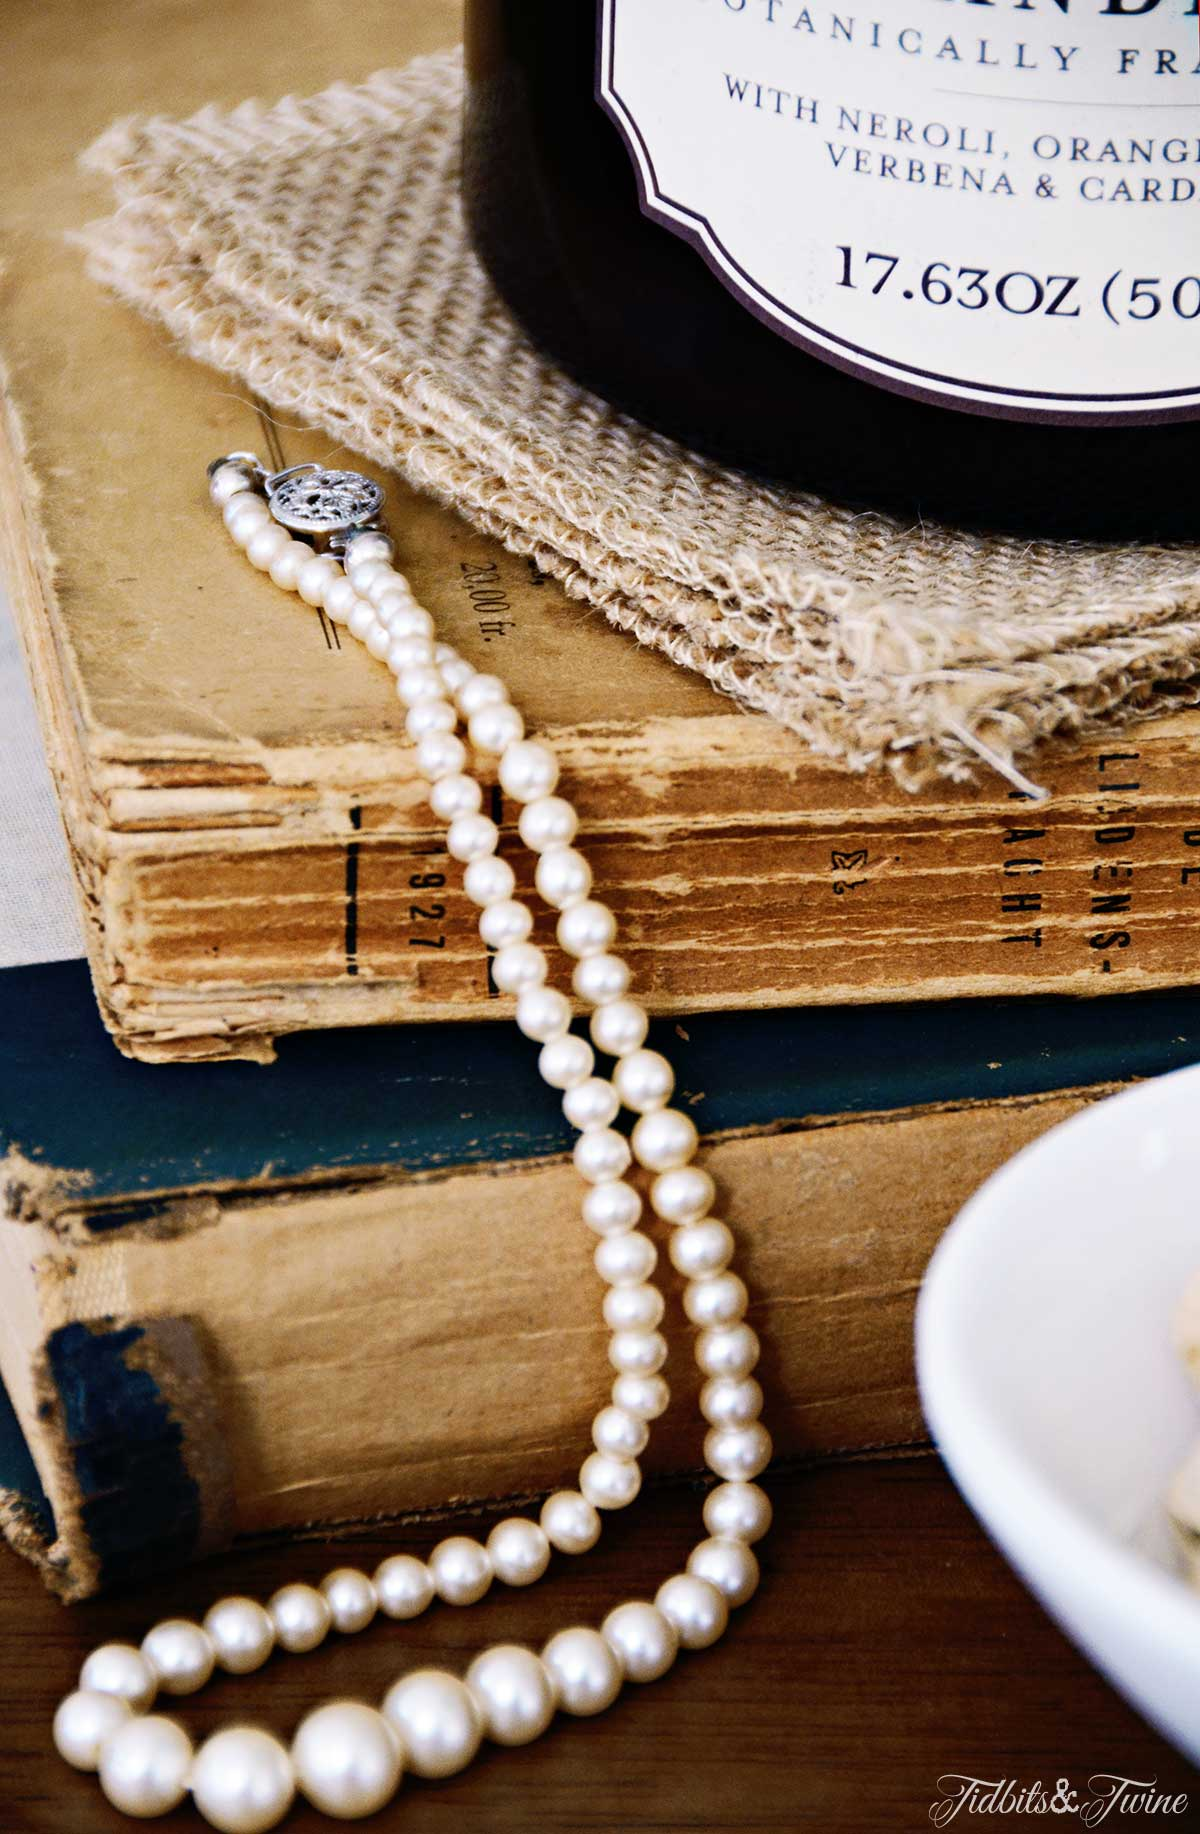 TIDBITS&TWINE-Vintage Books and Pearls